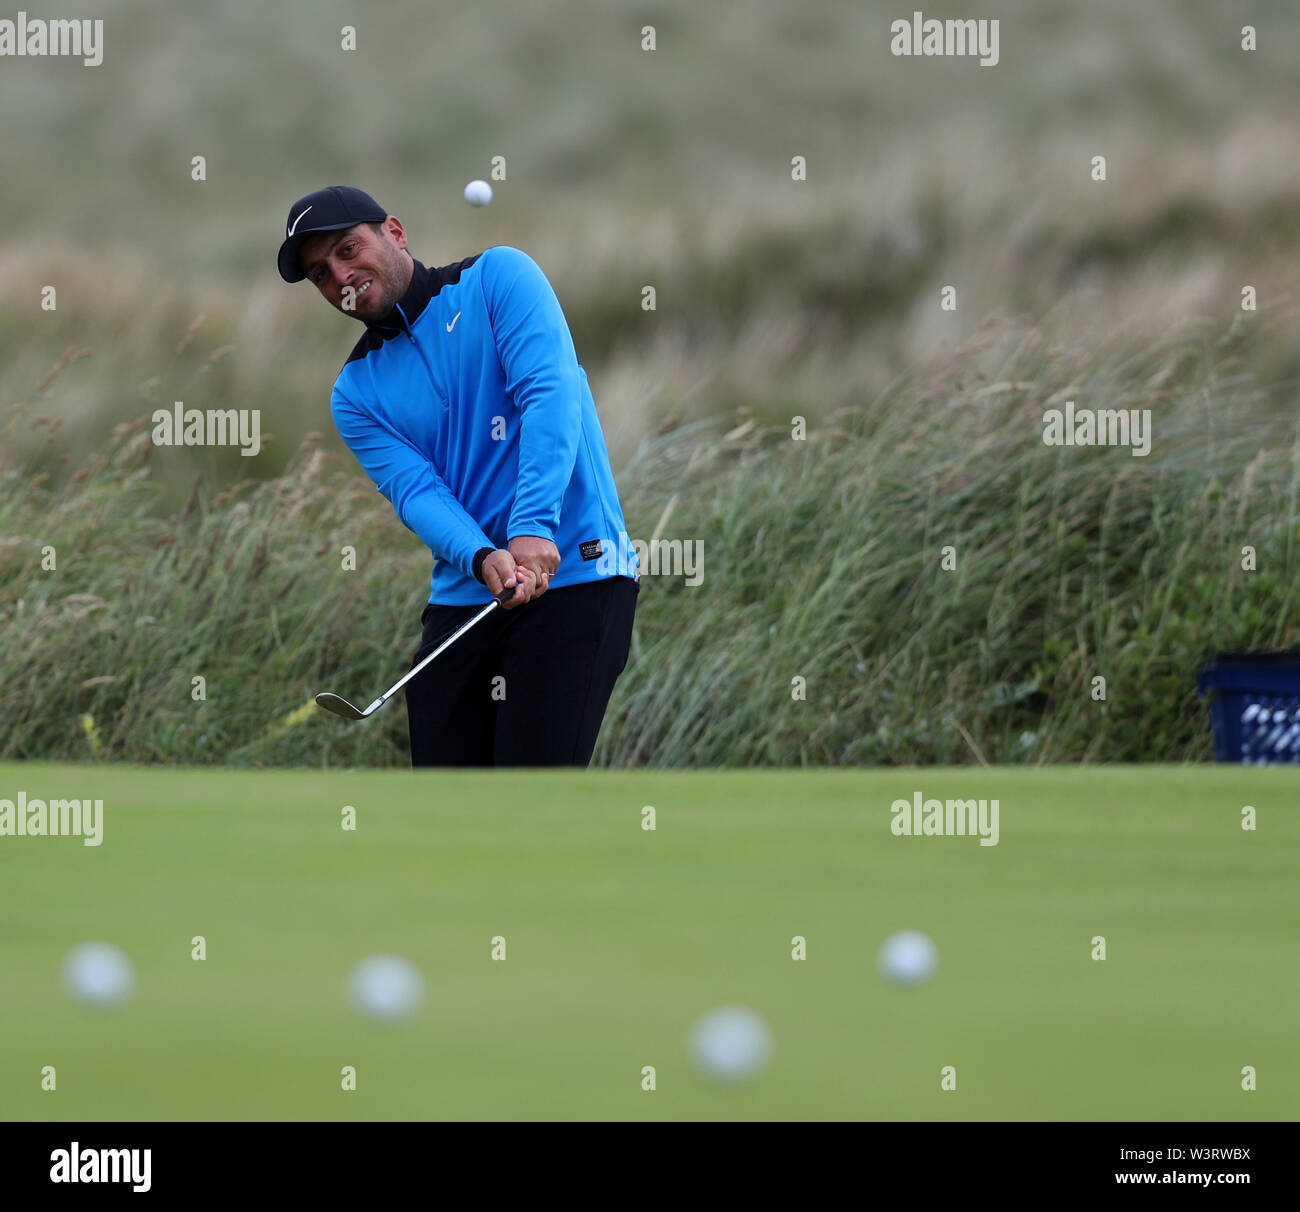 Portrush, Country Antrim, Northern Ireland. 17th July, 2019. The 148th Open Golf Championship, Royal Portrush Golf Club, Practice day; defending Open Champion Francesco Molinari (ITA) practices a pitch shot Credit: Action Plus Sports Images/Alamy Live News Stock Photo